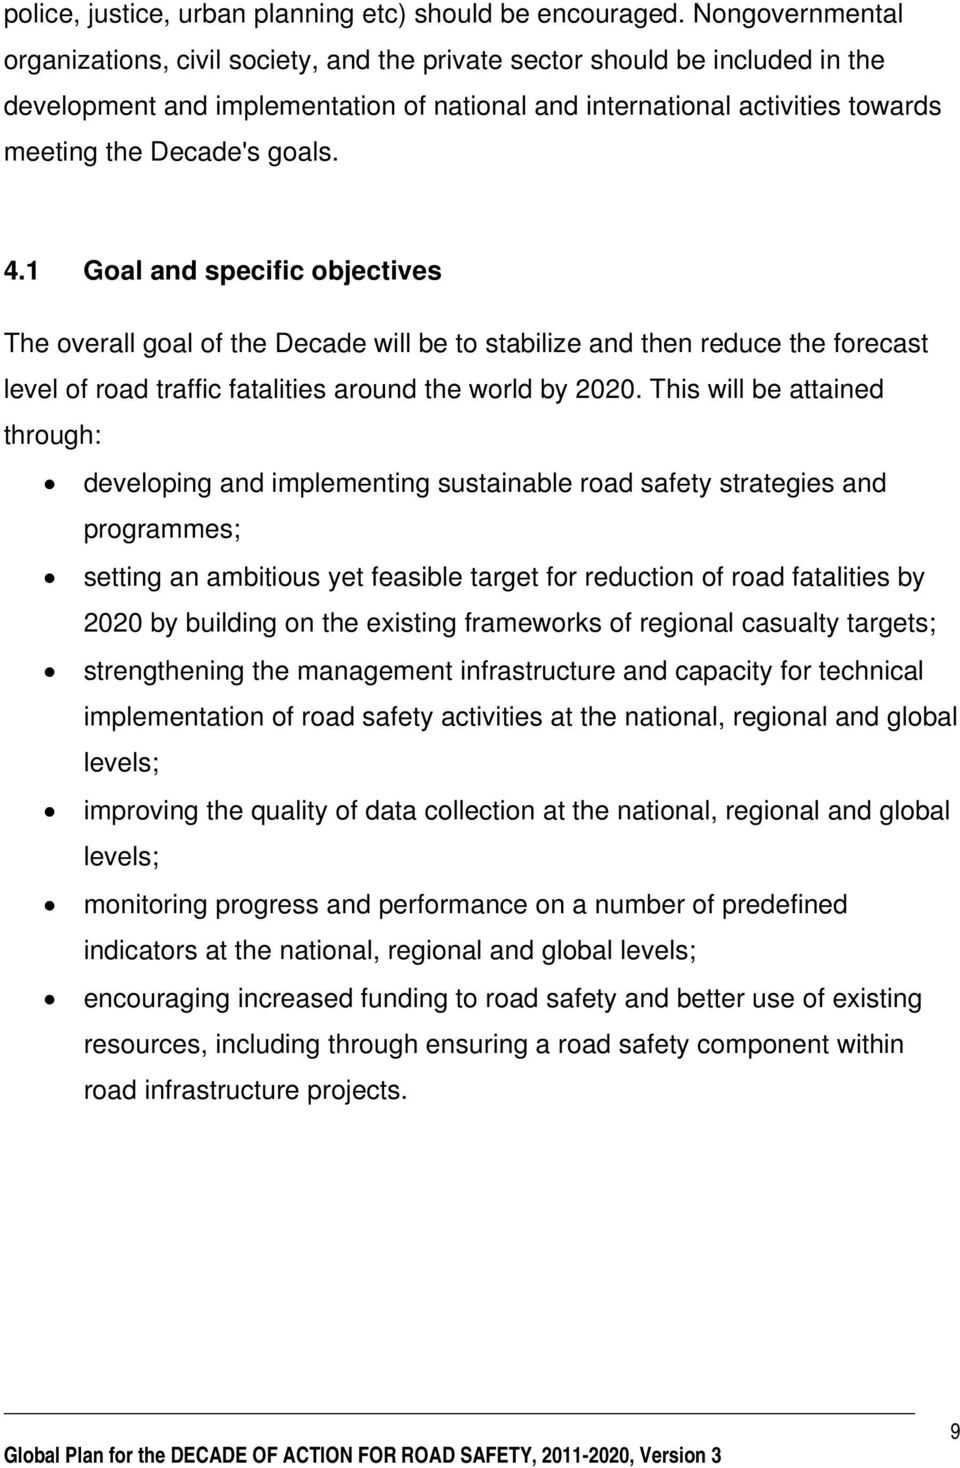 goals. 4.1 Goal and specific objectives The overall goal of the Decade will be to stabilize and then reduce the forecast level of road traffic fatalities around the world by 2020.